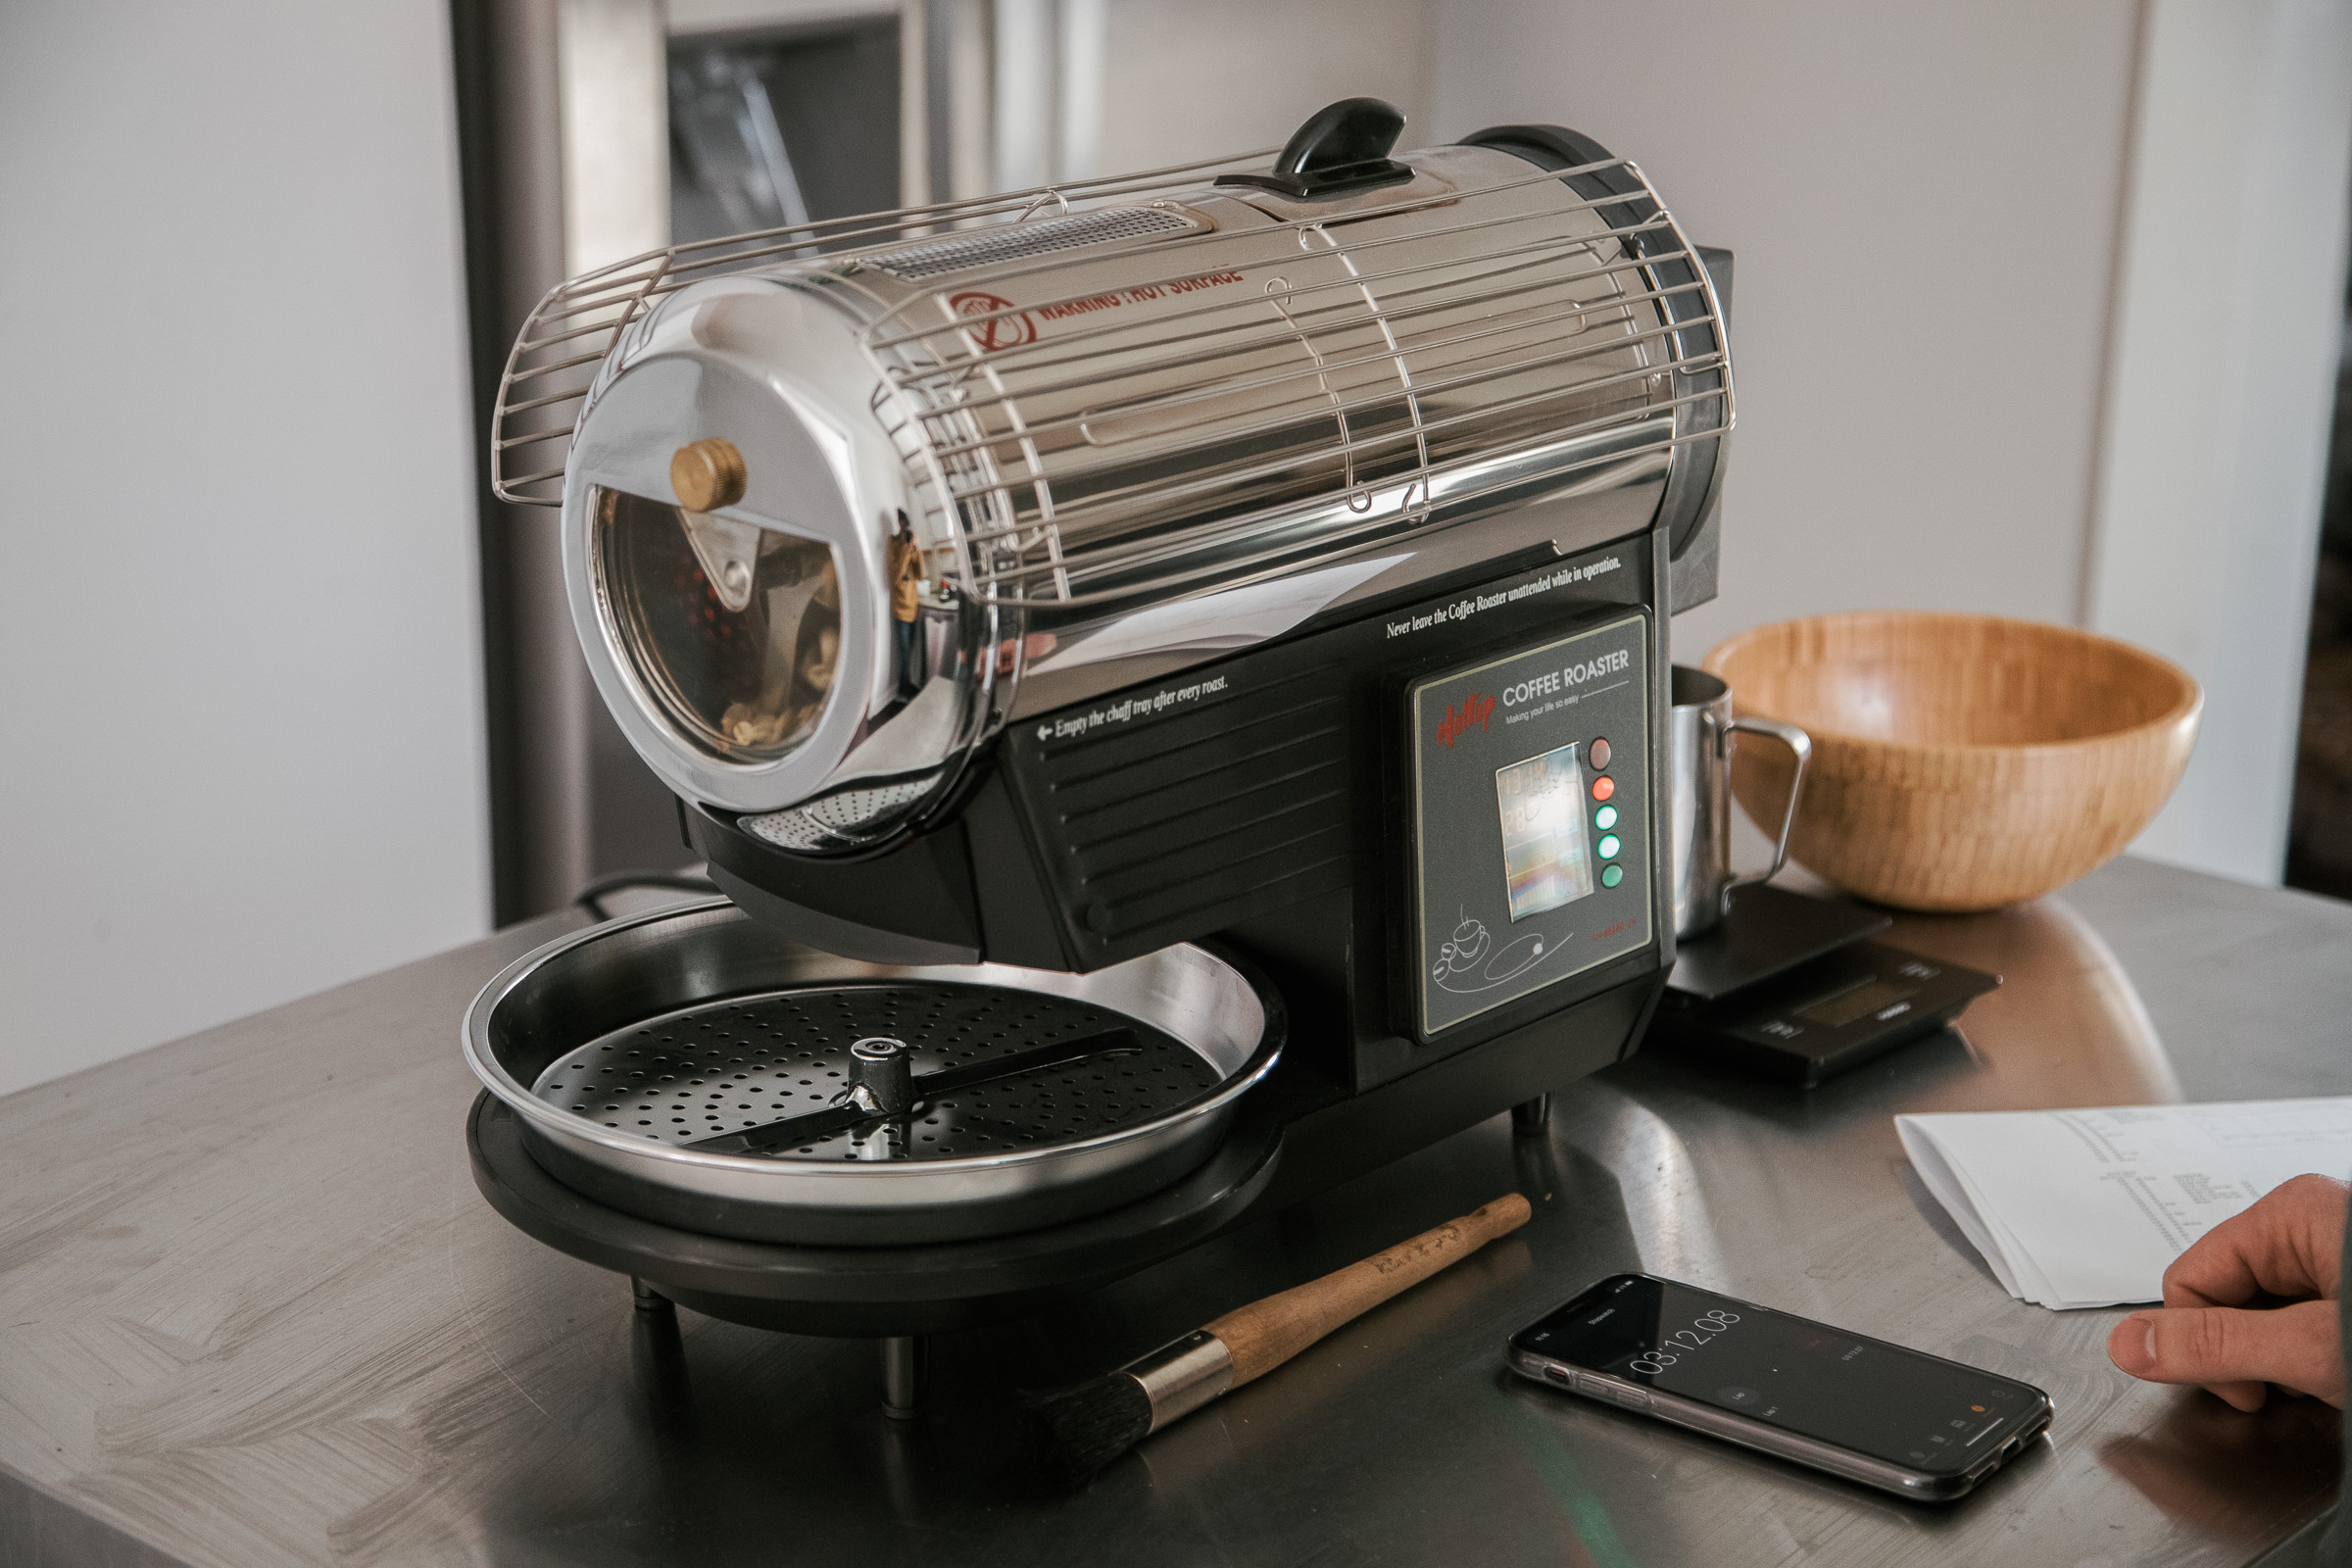 A Hottop Coffee Roaster in a kitchen with a Apple iPhone X R keeping track of the time.